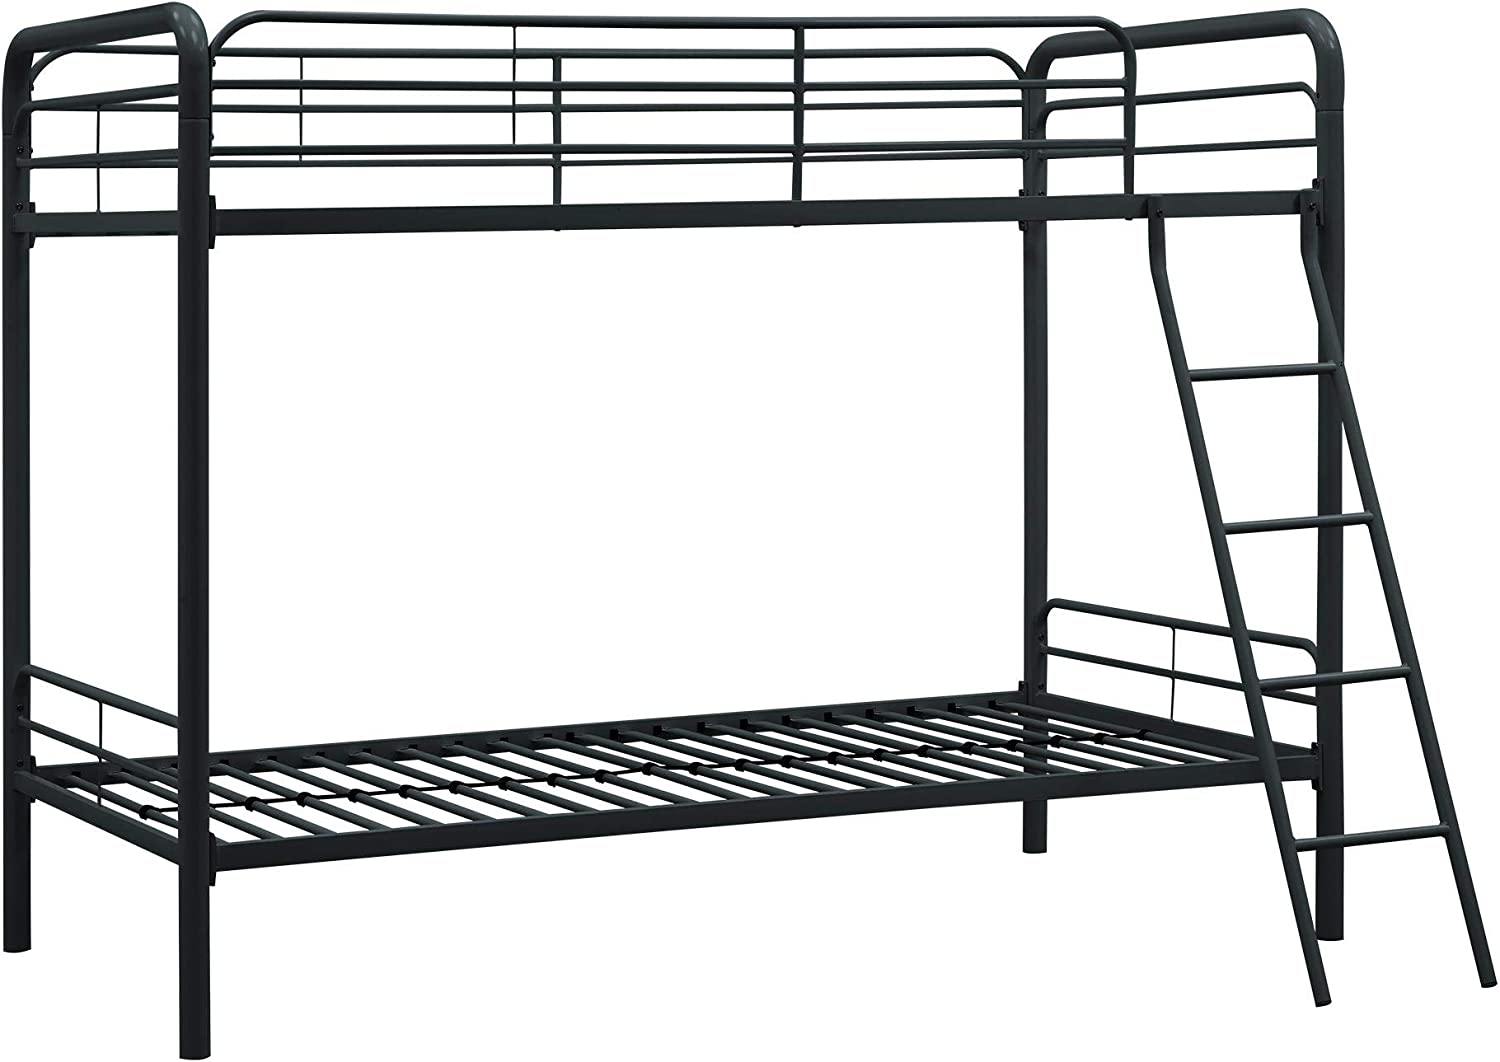 Amazon Com Dhp Twin Over Twin Bunk Bed With Metal Frame And Ladder Space Saving Design Black Furniture Decor